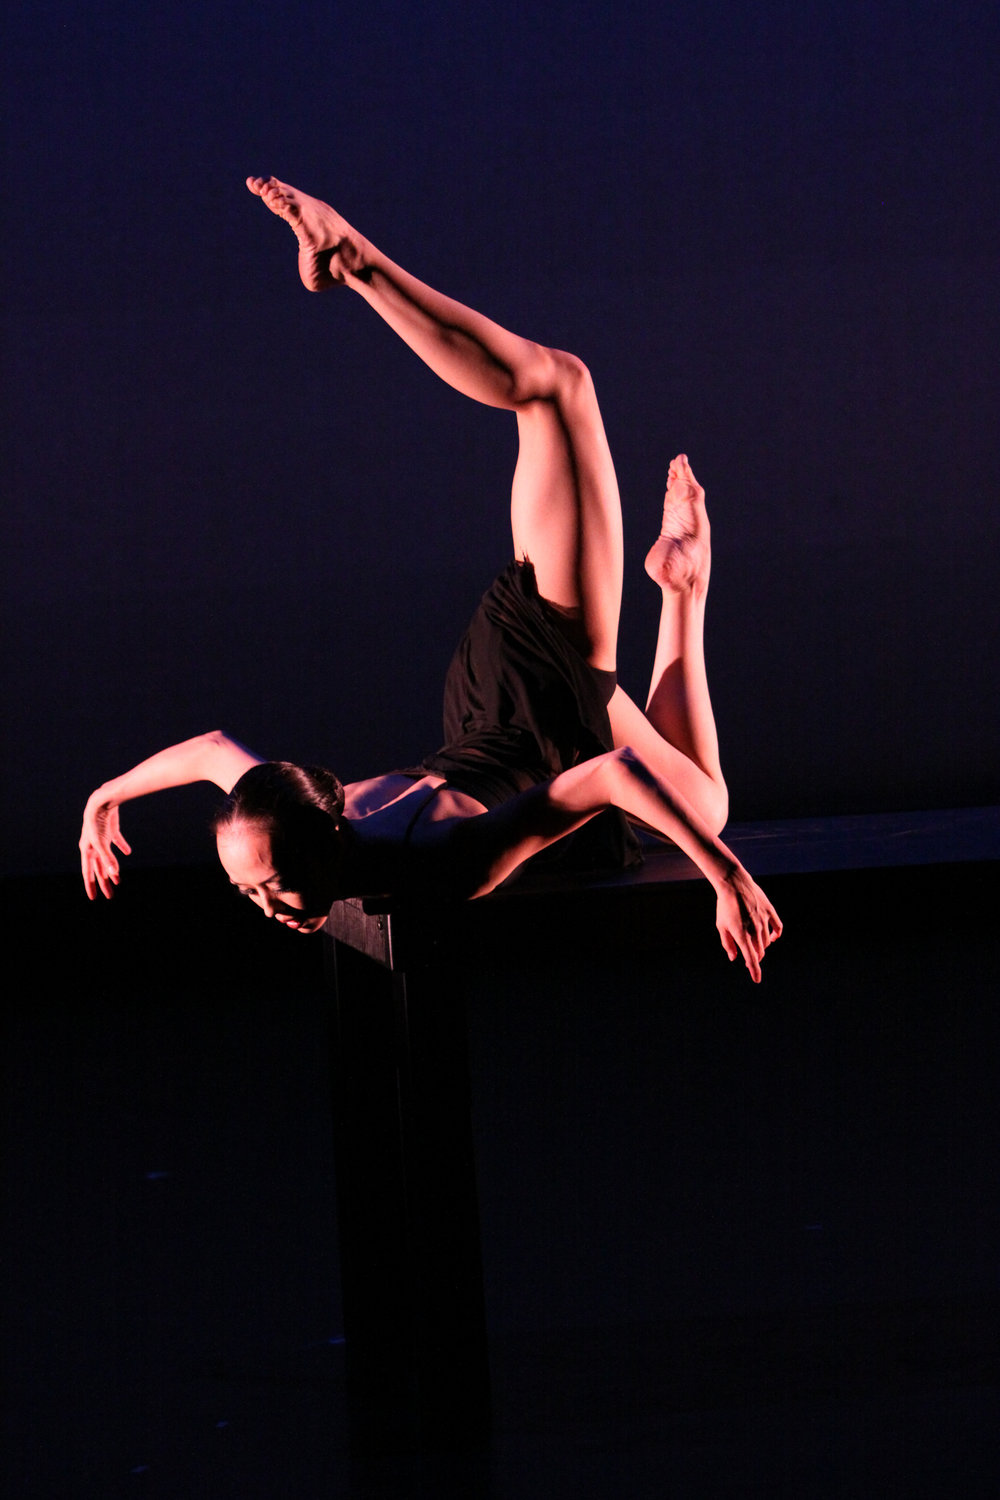 LAFA & Artists Dance Company (U.S. debut). Jacob's Pillow Dance Festival, 2009.